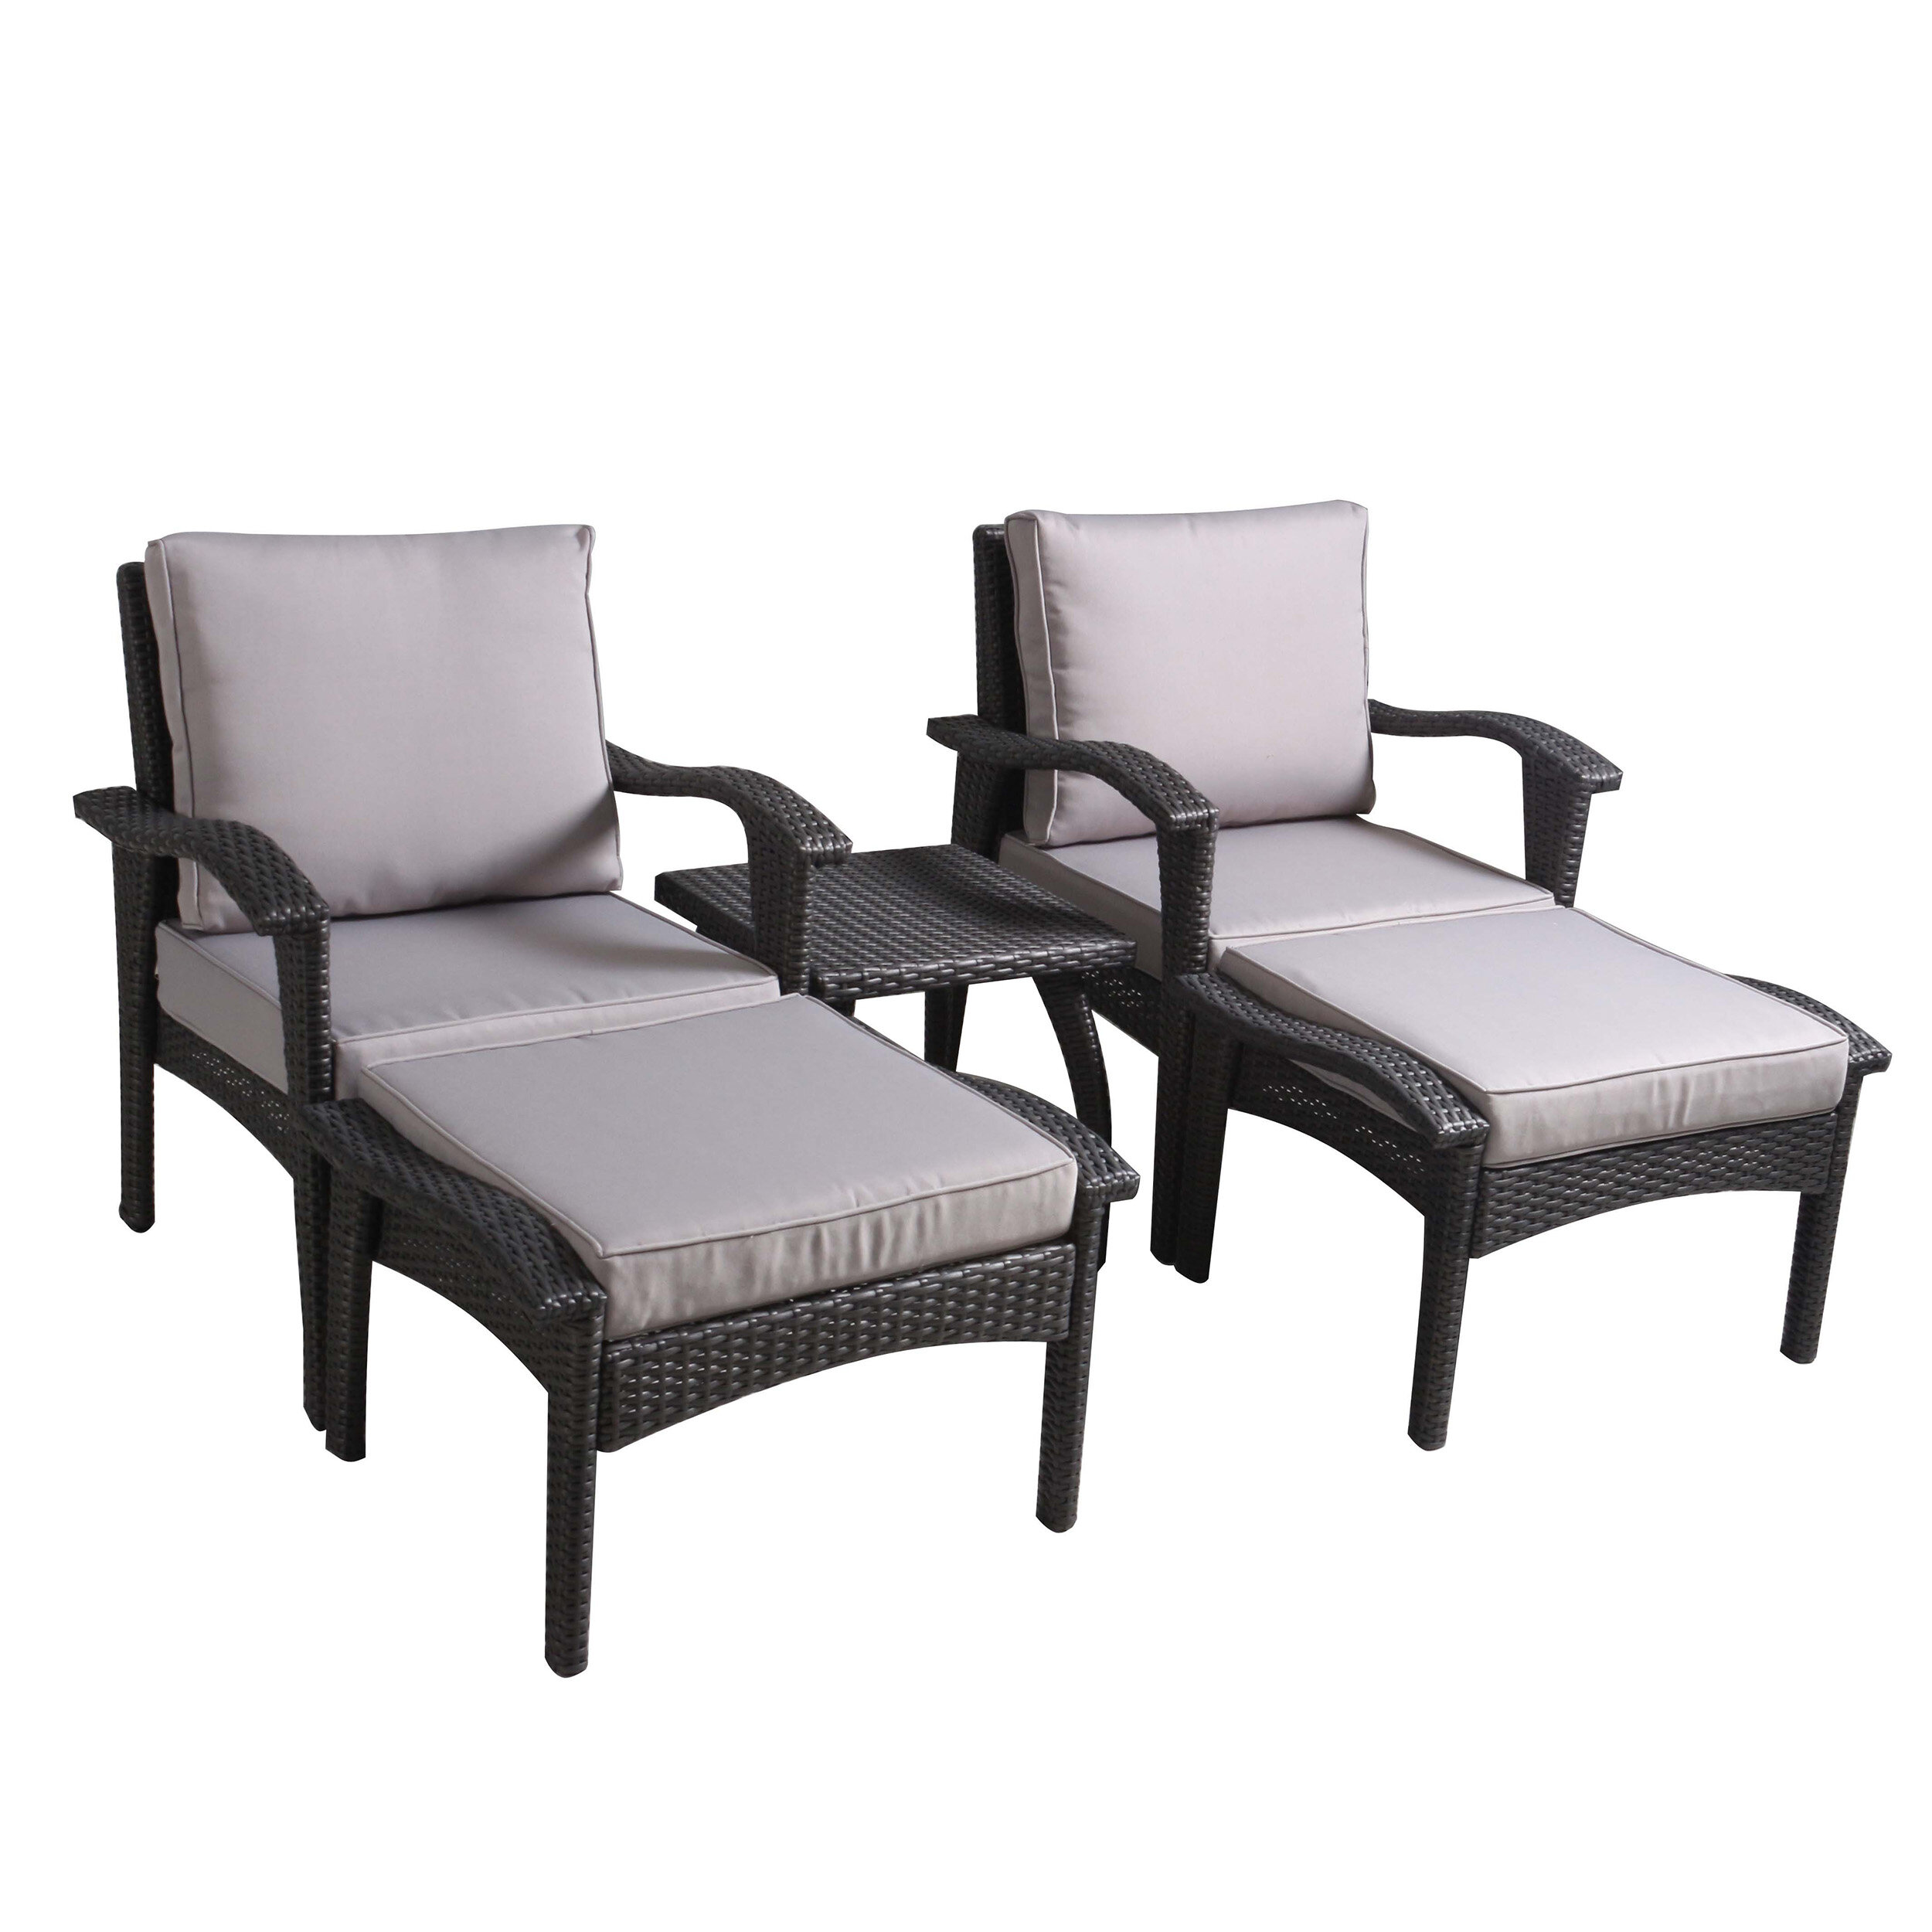 Beacon All Weather Wicker/Rattan 2 - Person Seating Group with Cushions